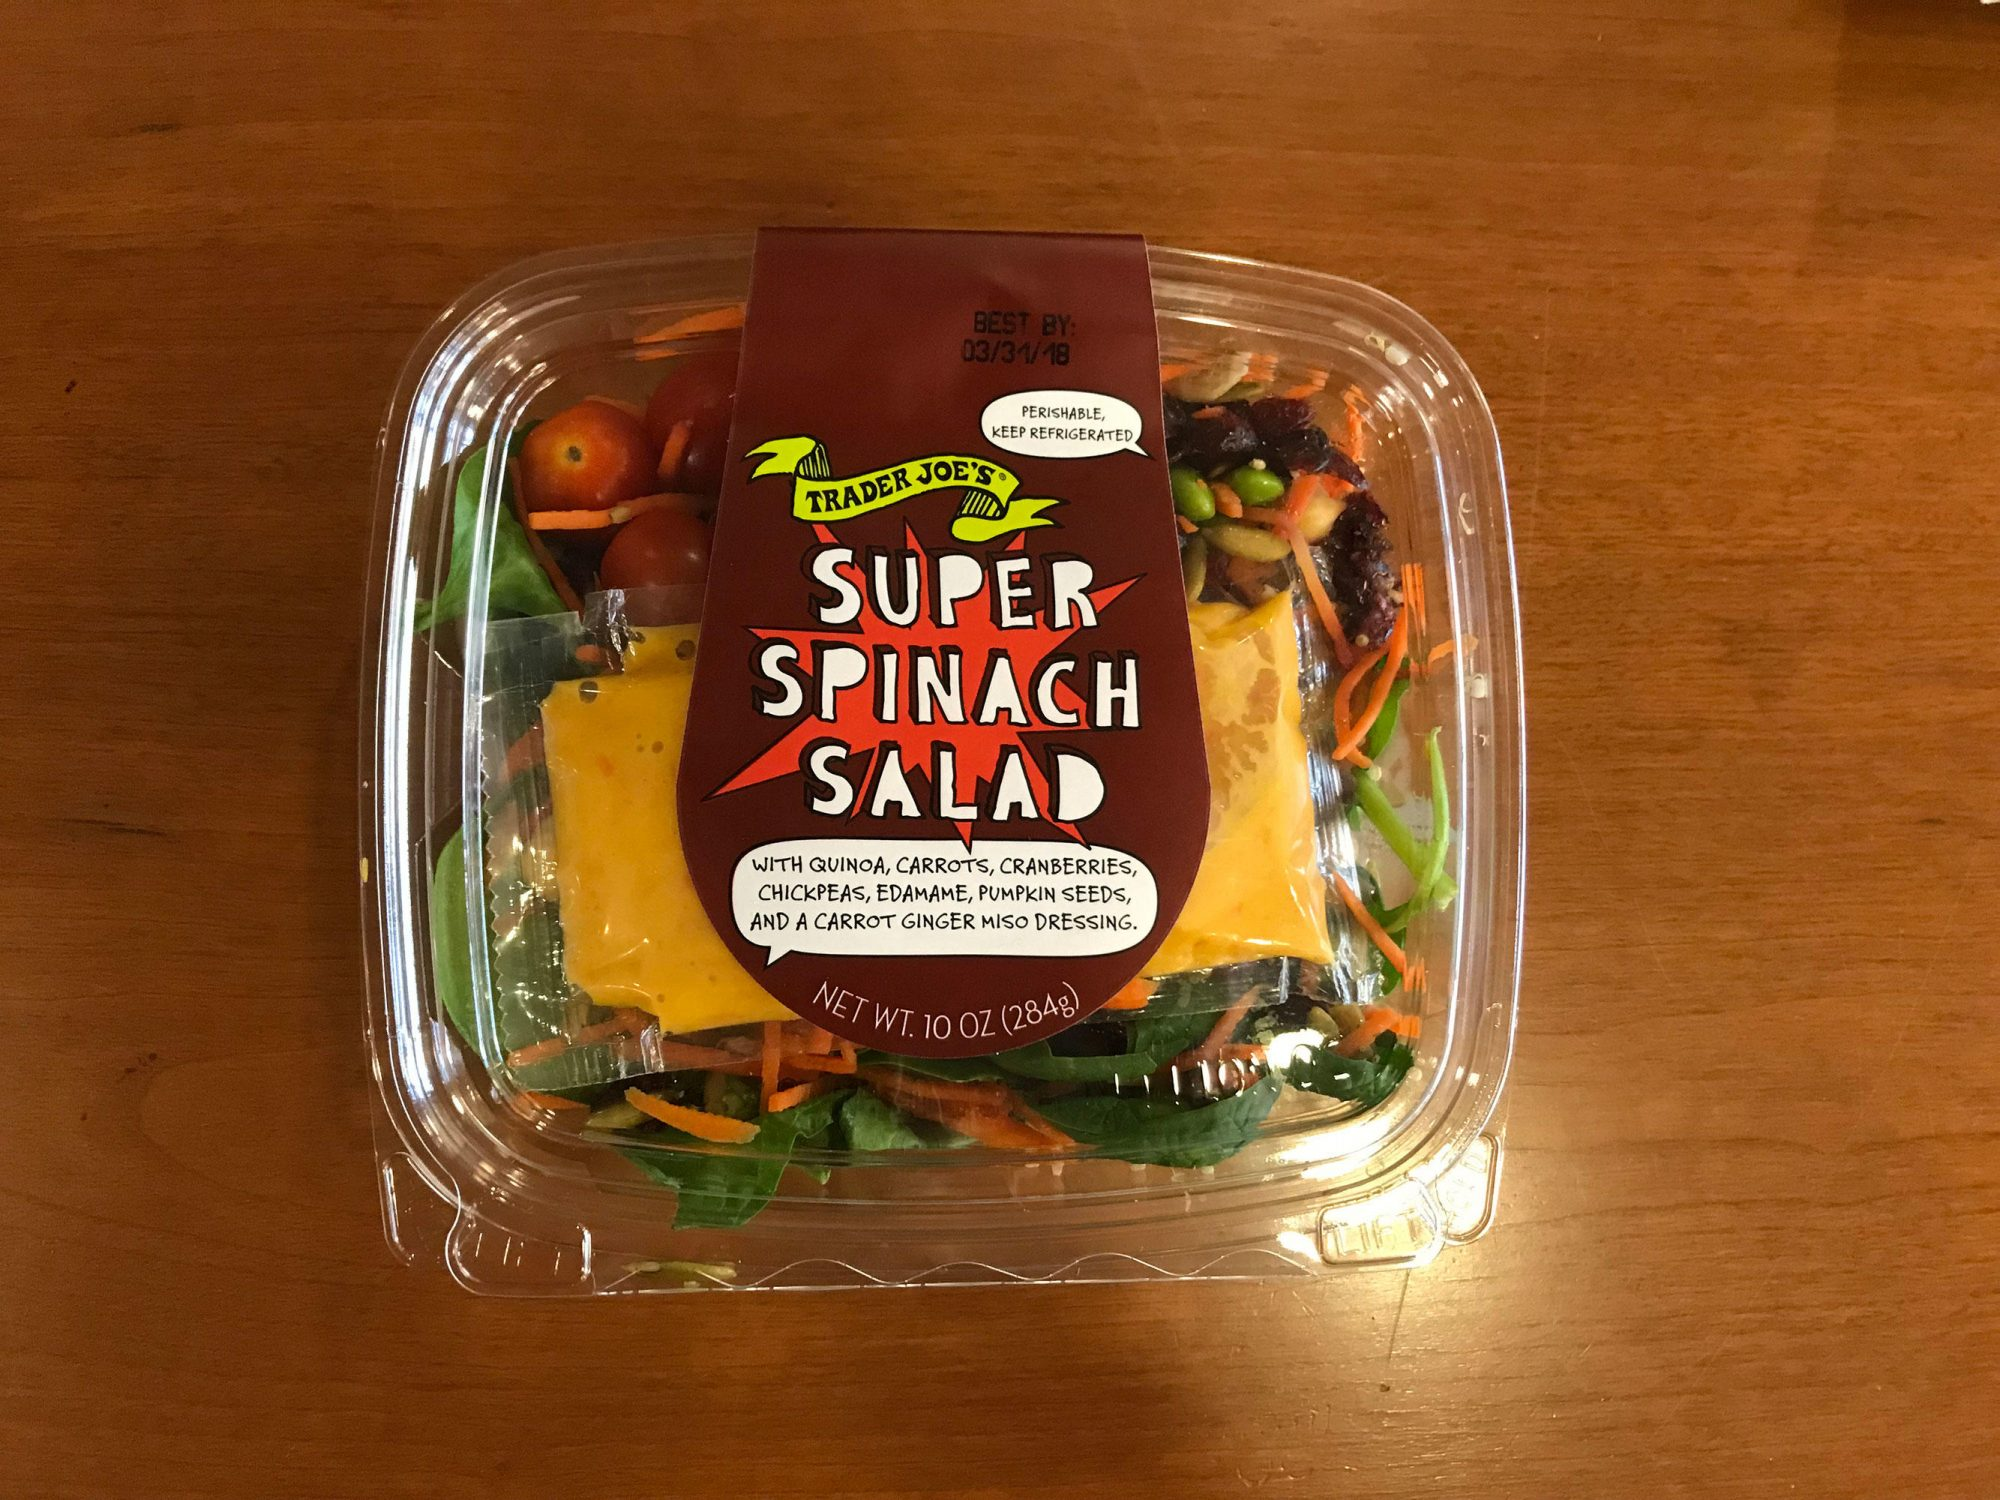 We Tried 9 Trader Joe's Salad Kits—And This One Was Our Favorite spinachsalad